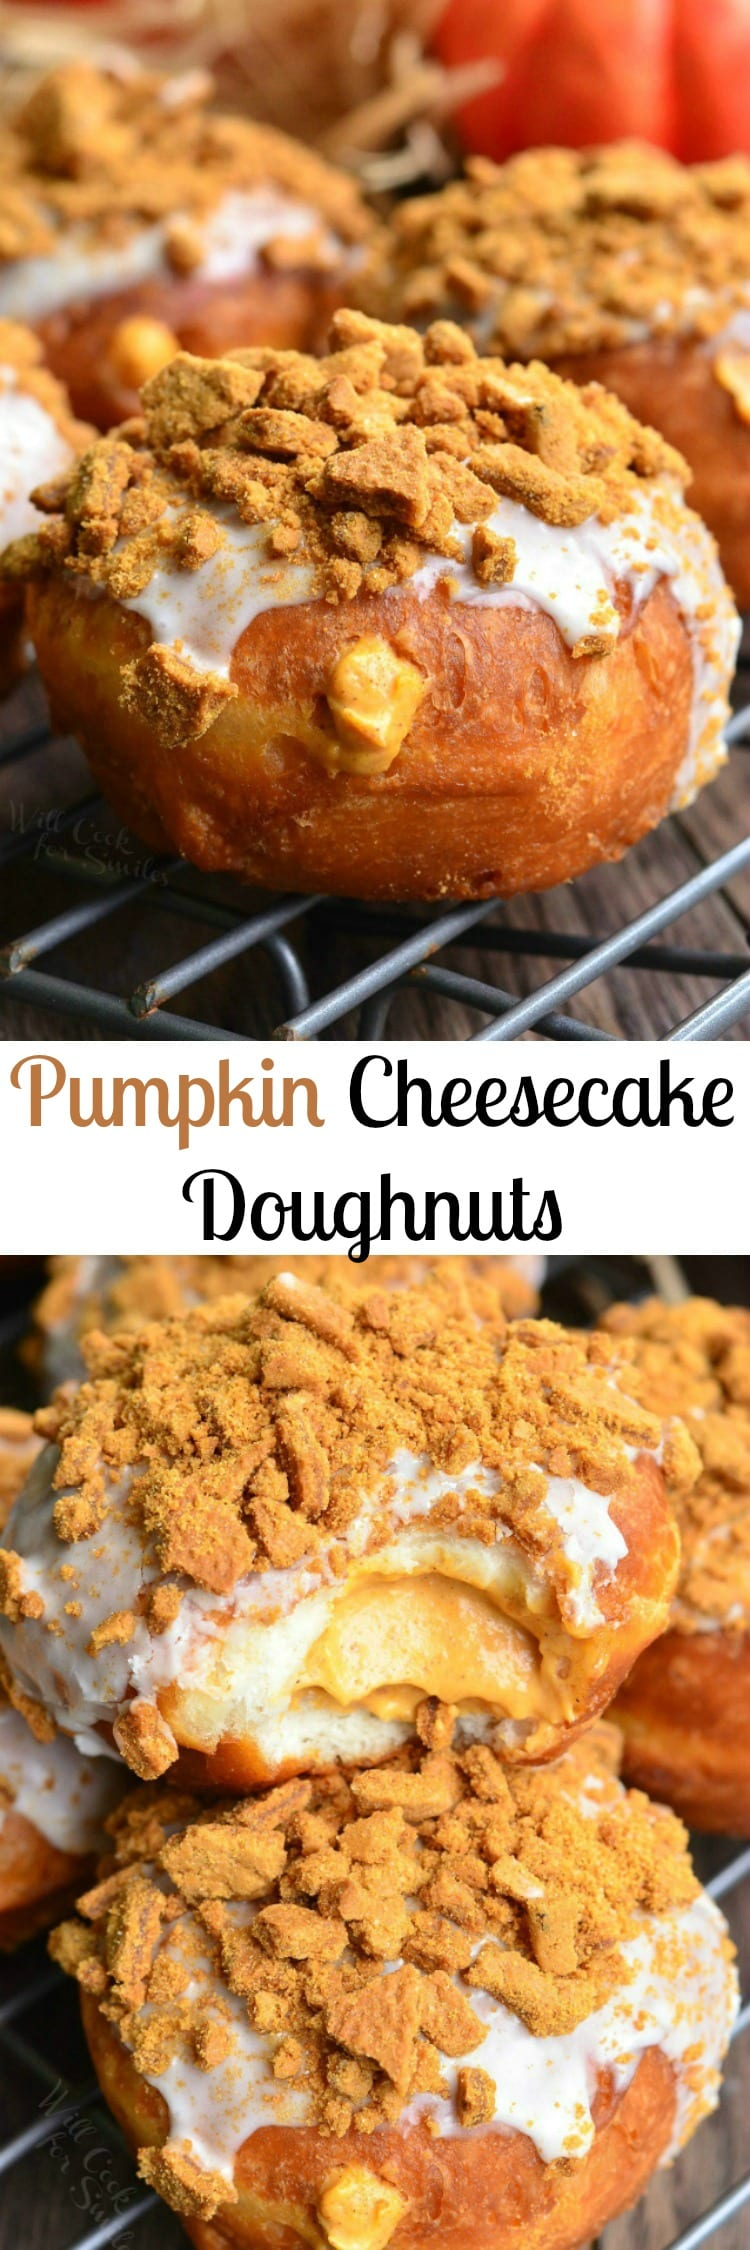 Pumpkin Cheesecake Doughnuts with Gingersnap Crumb. Easy stuffed doughnuts filled with pumpkin cheesecake mixture and topped with pumpkin spice icing and crispy gingersnap cookies.